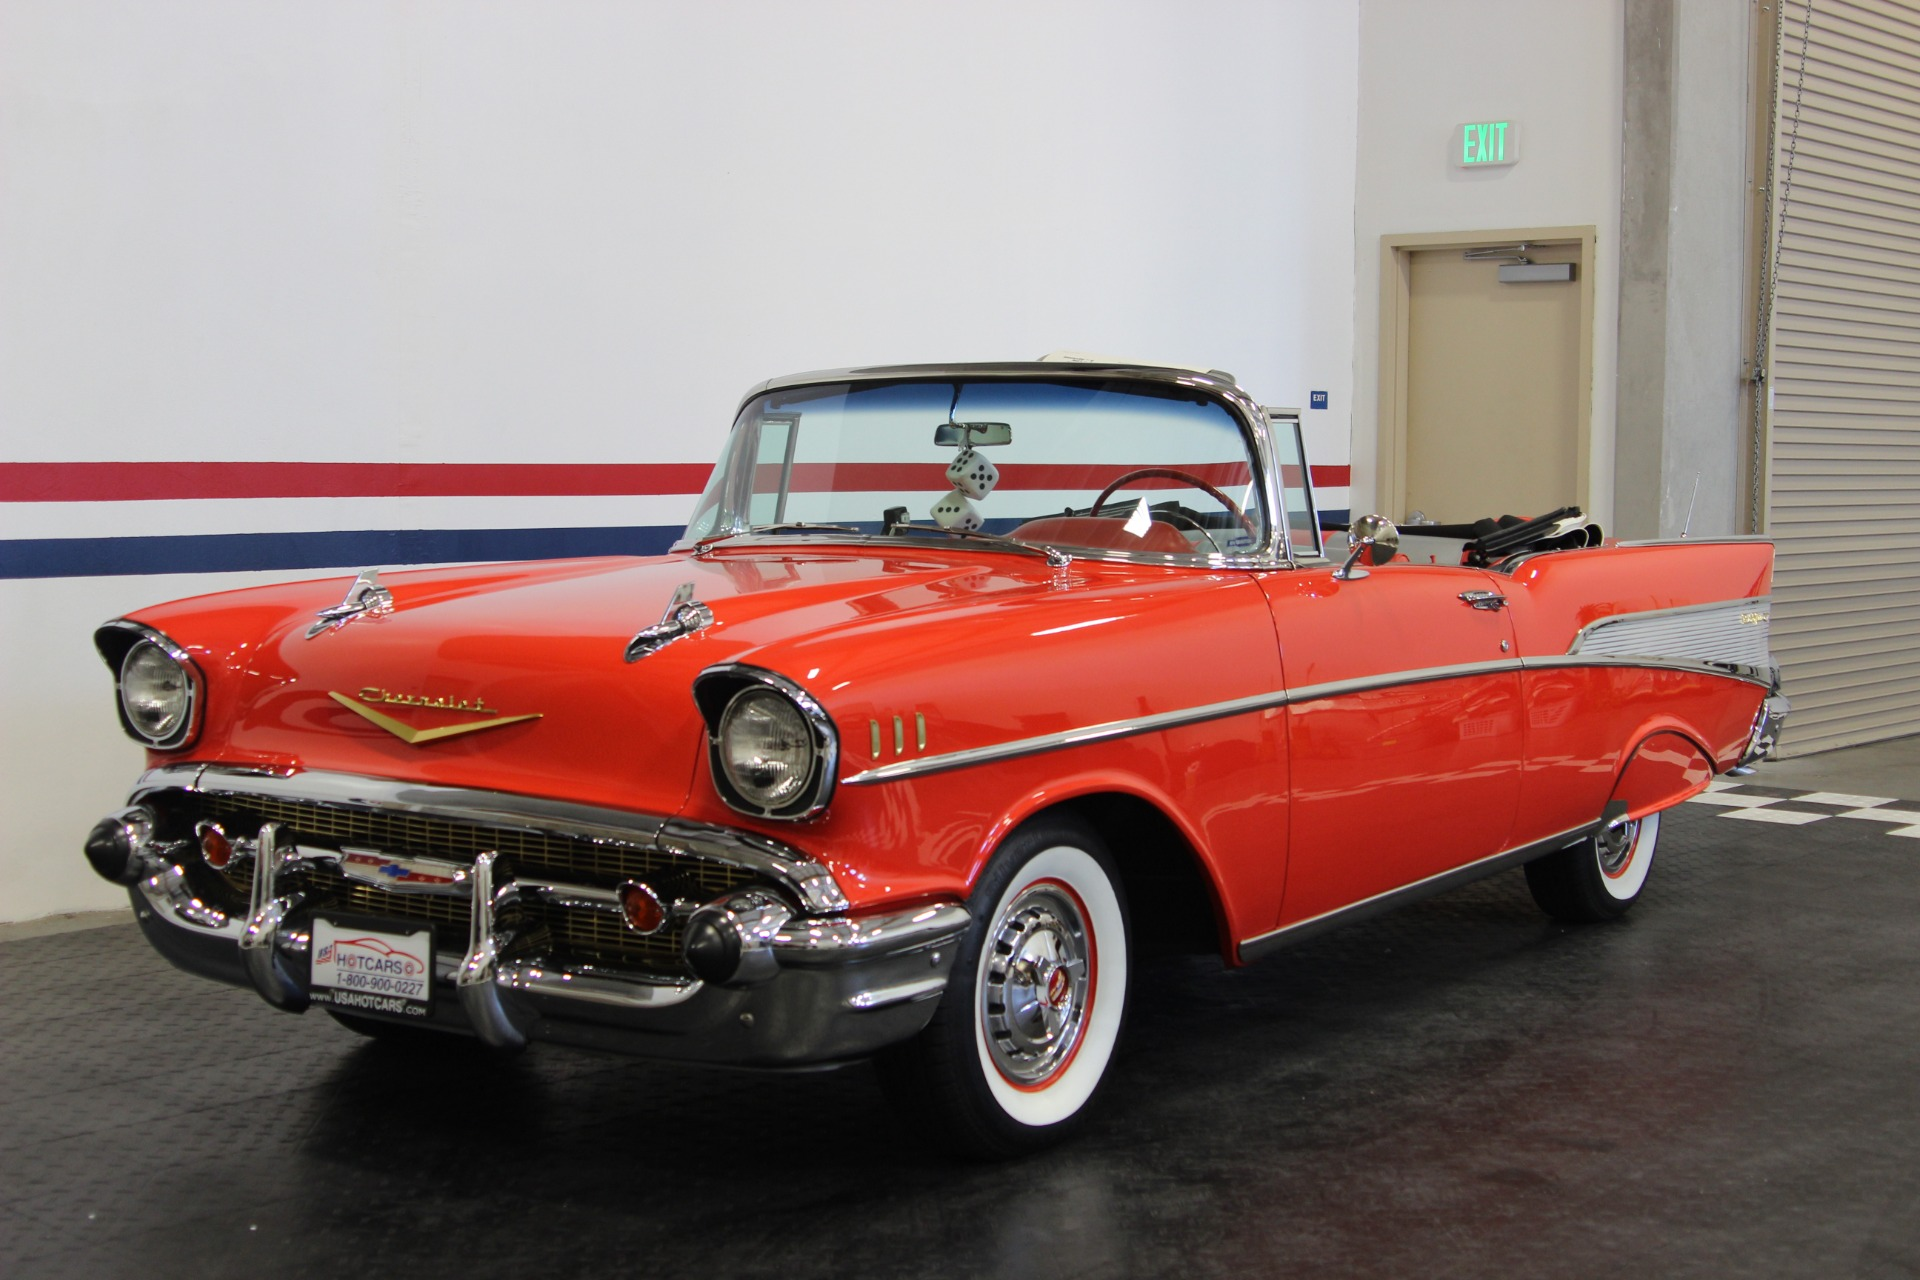 1957 Chevrolet Bel Air Stock 18072 For Sale Near San Ramon Ca Chevy Fuse Box Location Used